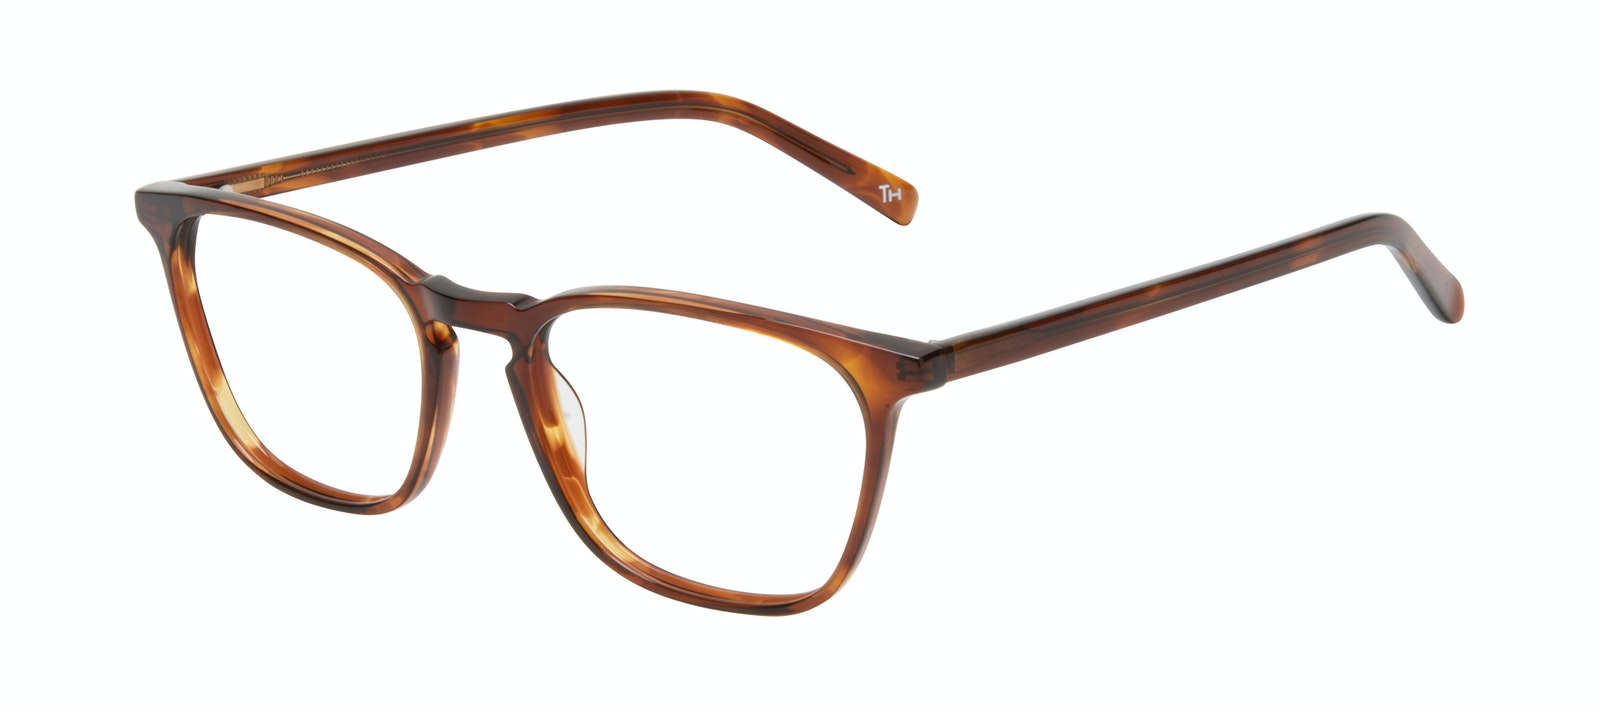 Affordable Fashion Glasses Square Eyeglasses Men Louise XL Cedar Tilt